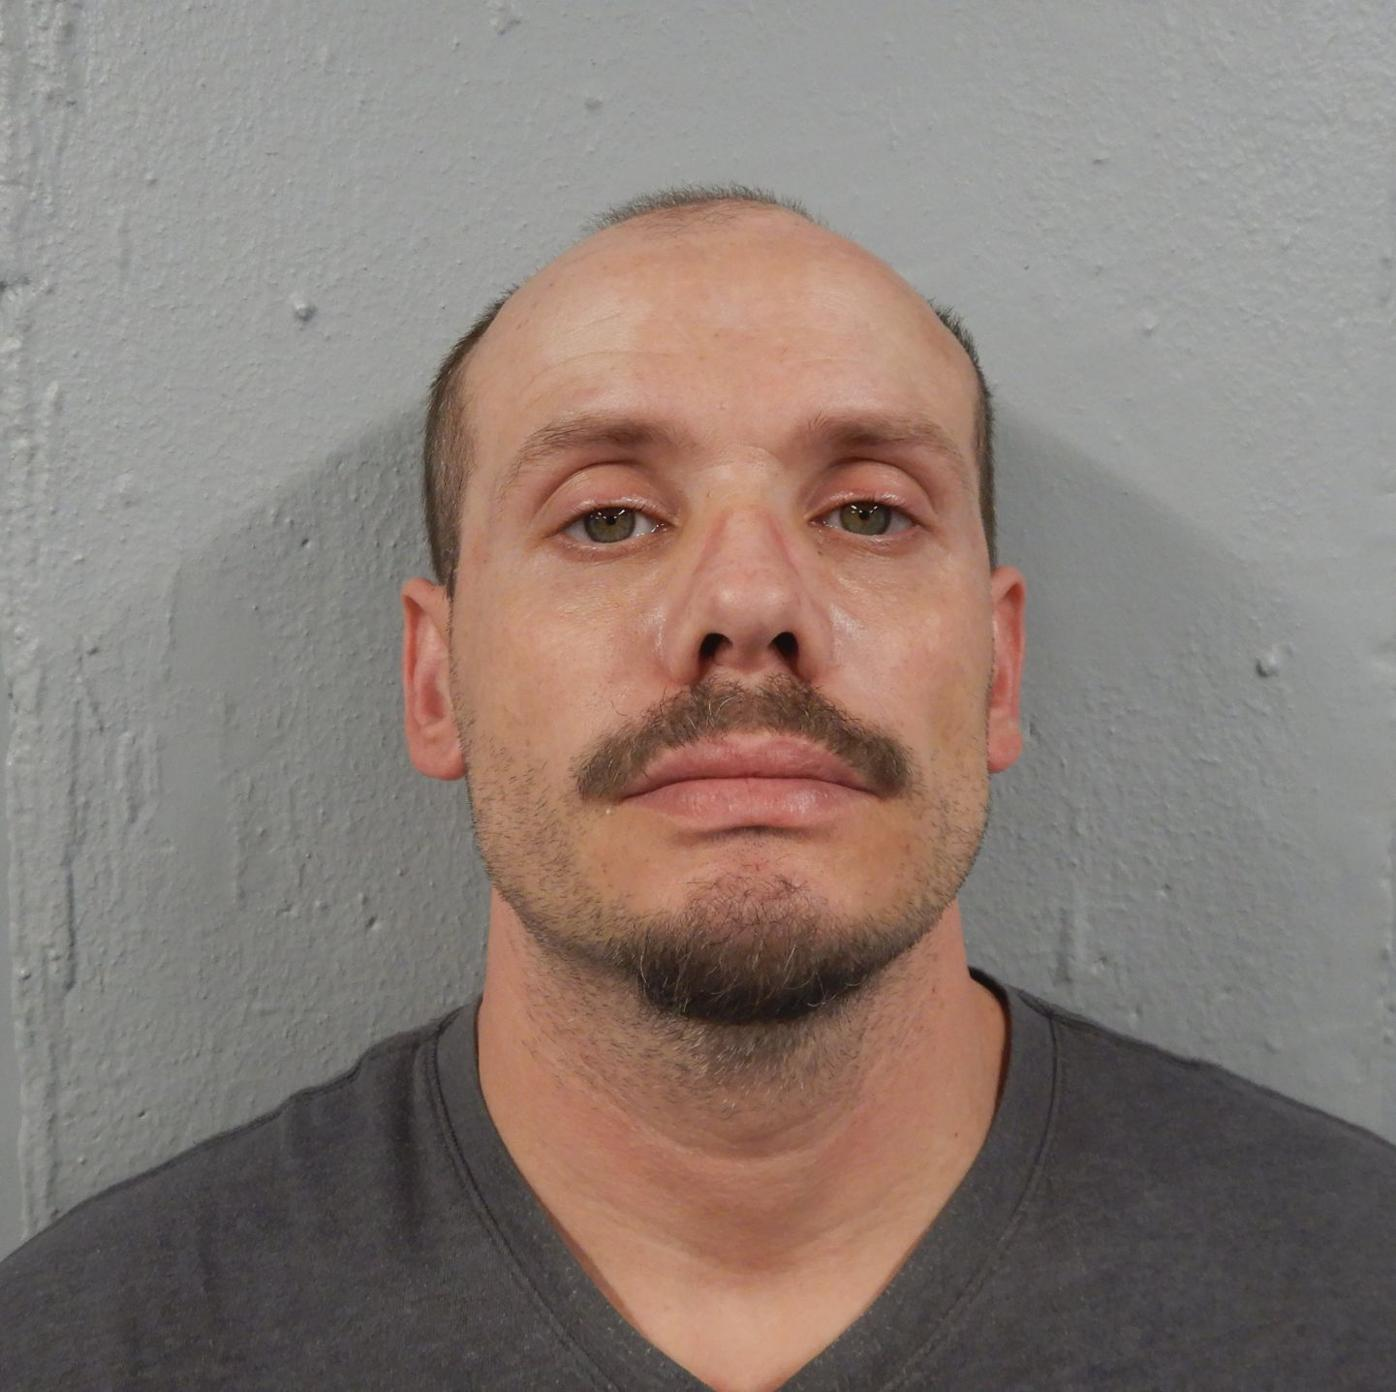 ACES serve two search warrants for methamphetamine